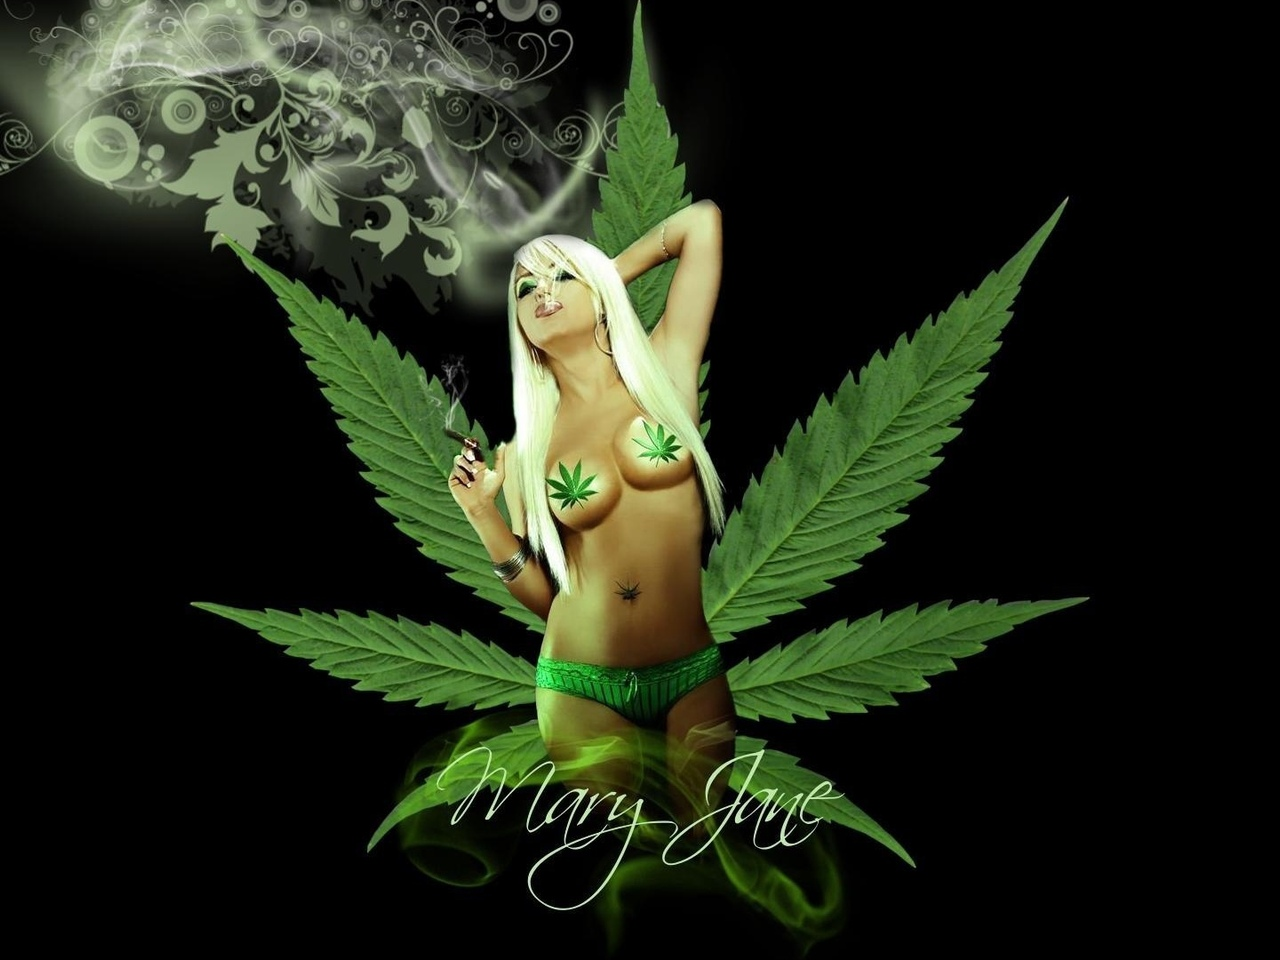 mary jane, ���������, �������, ��������, ������, �����, ���, ���, �����, cannabis